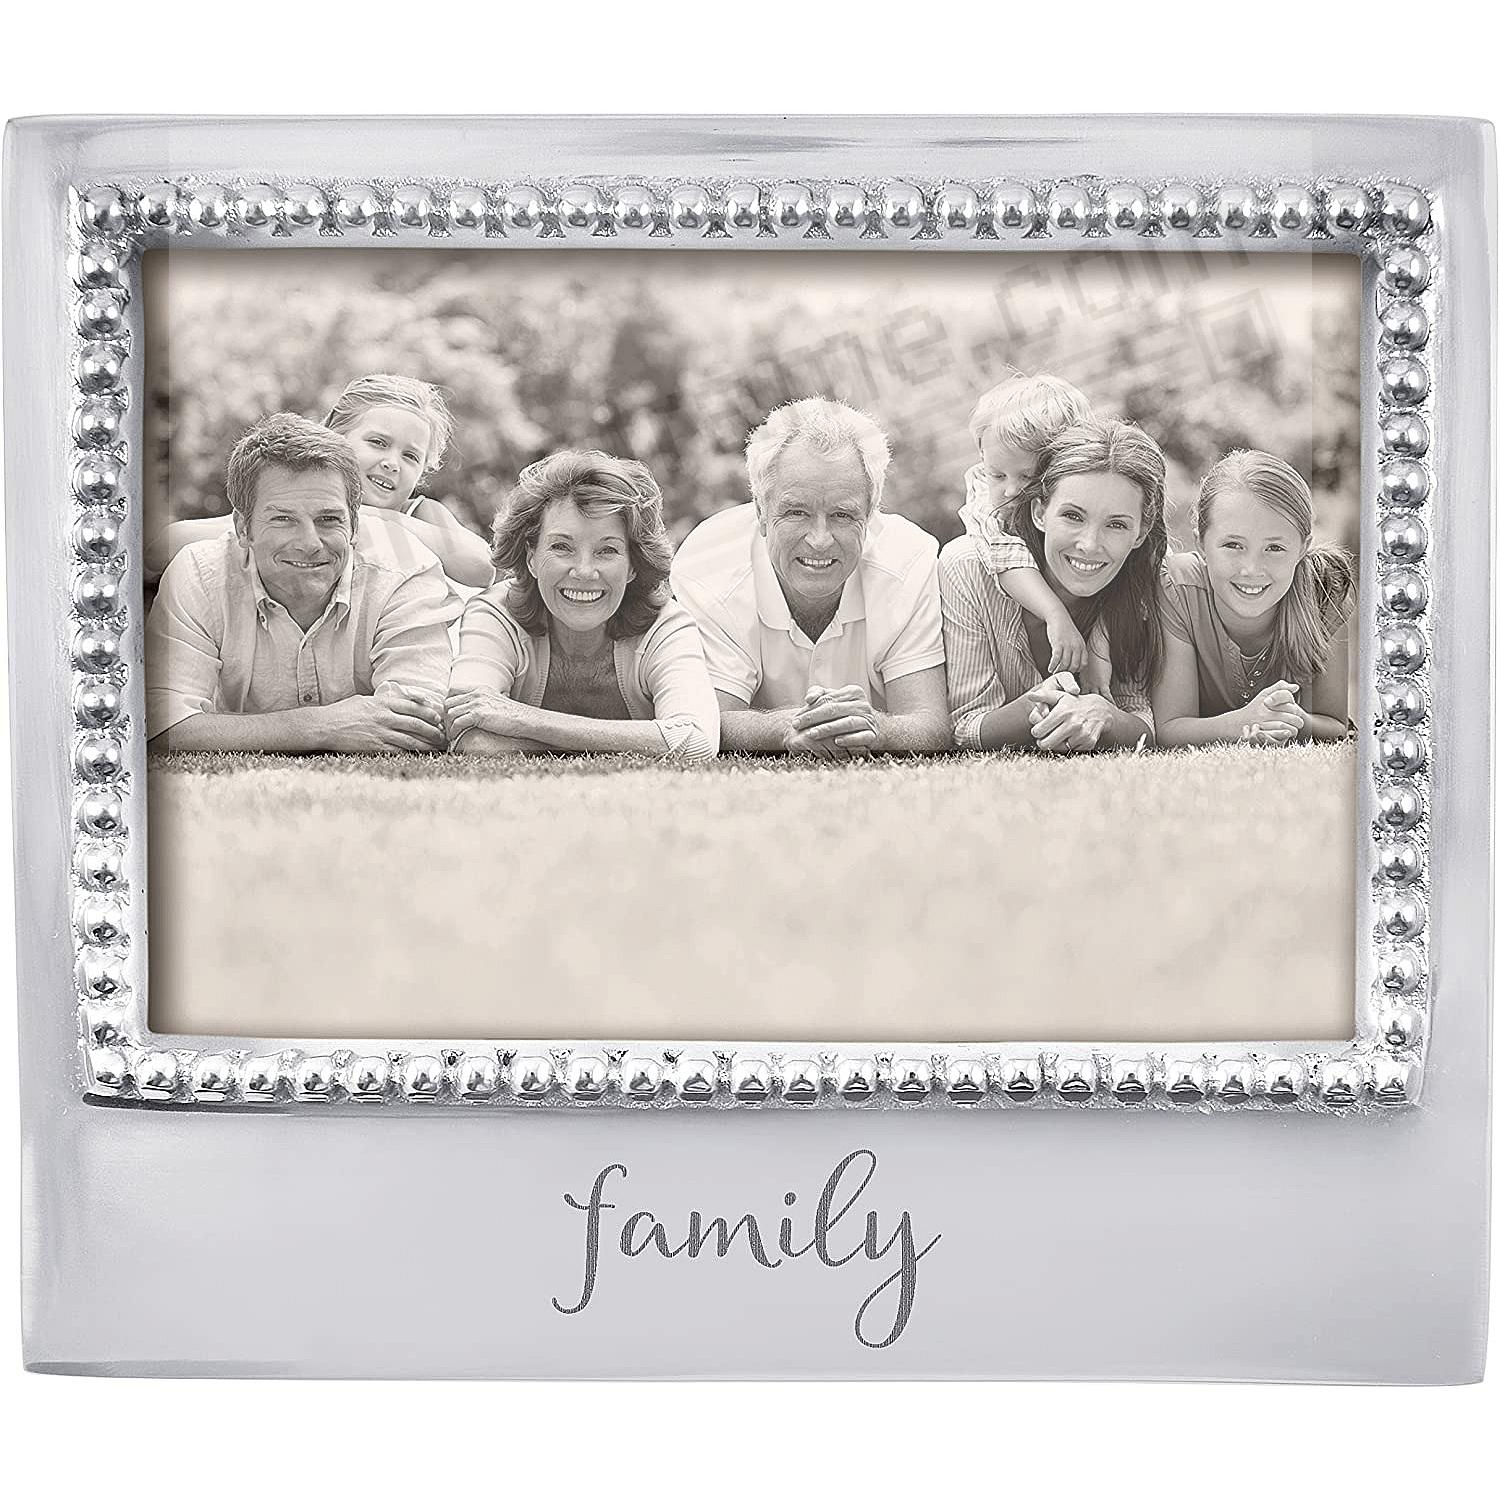 The original FAMILY Statement frame for 6x4 prints crafted by Mariposa®